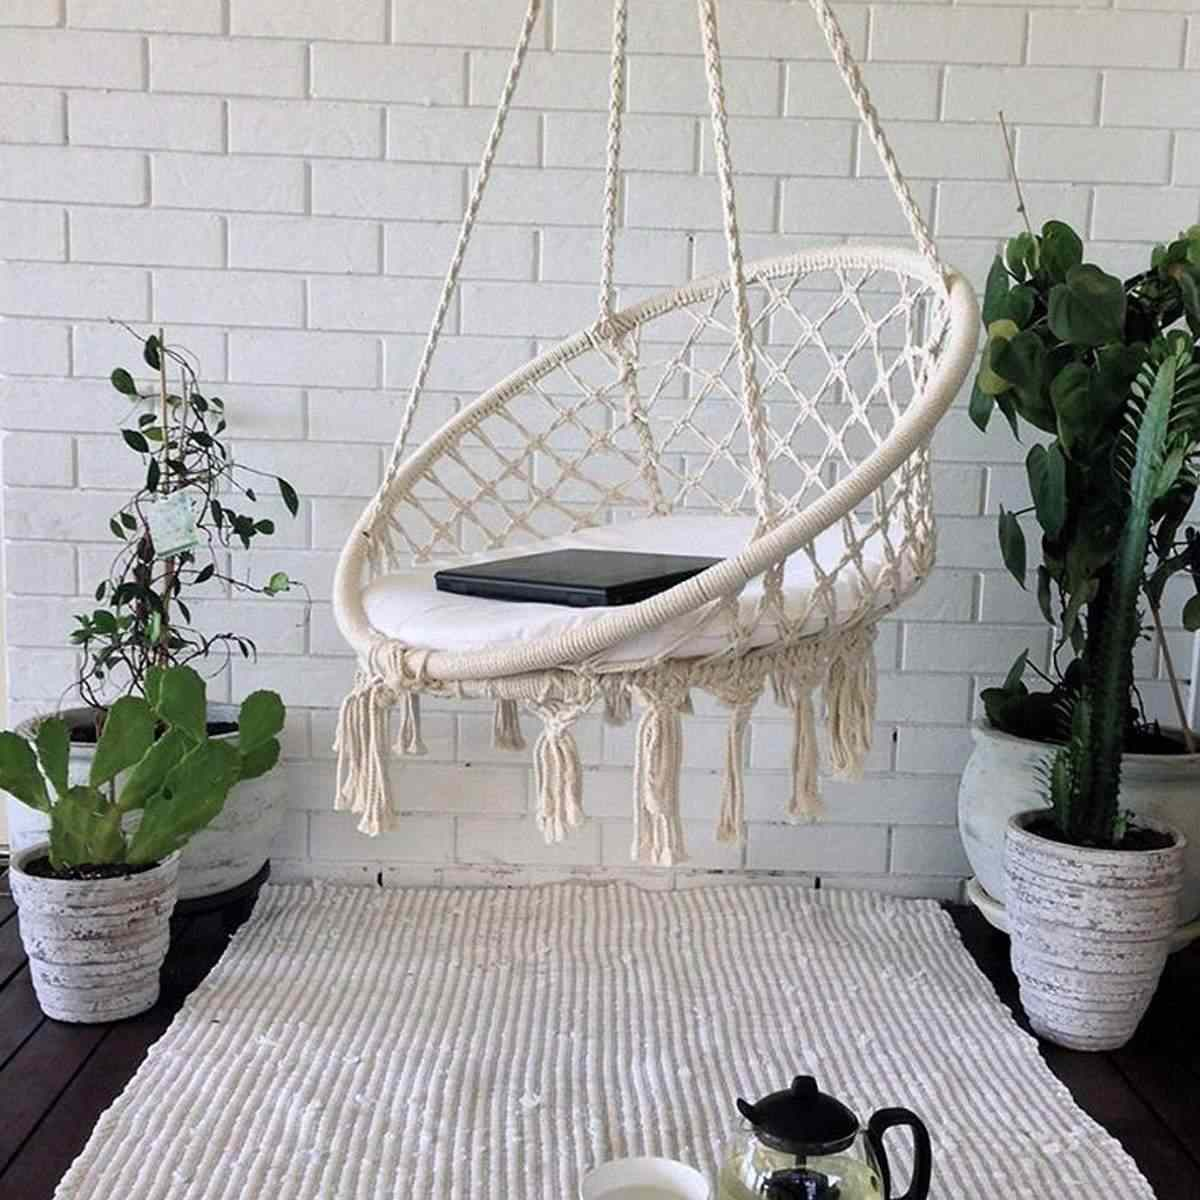 Hanging Chair Outdoor Round Hammock Swing Hanging Chair Outdoor Indoor Furniture Hammock Chair For Garden Dormitory Child Adult With Tools